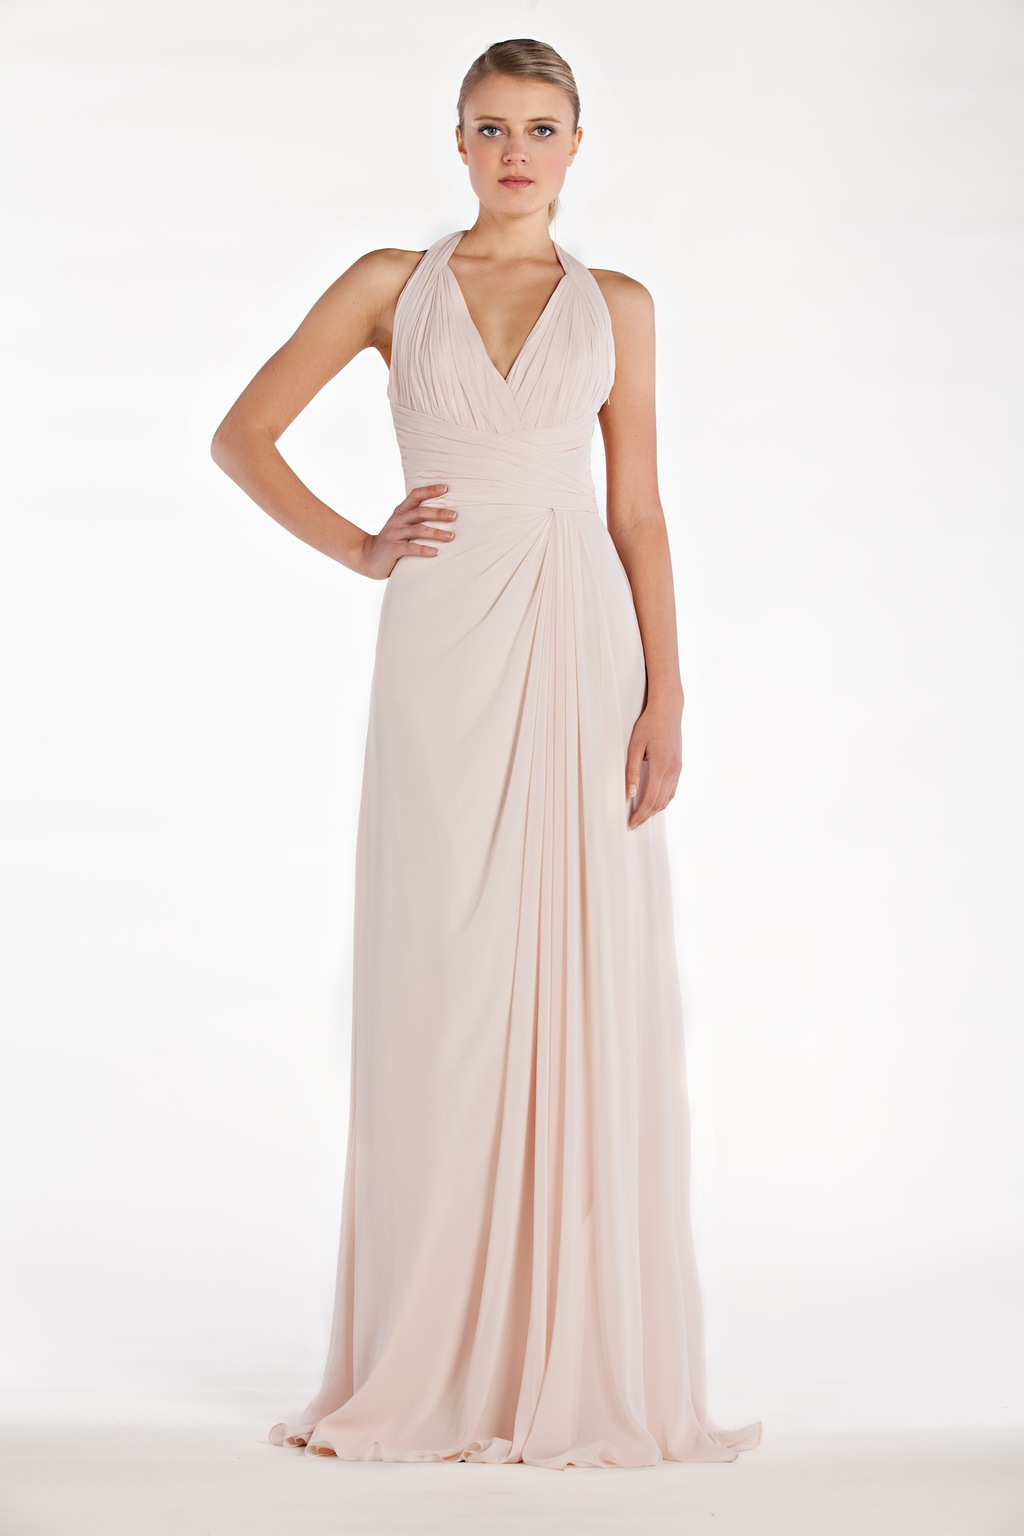 2014 bridesmaids dress from Monique Lhuillier